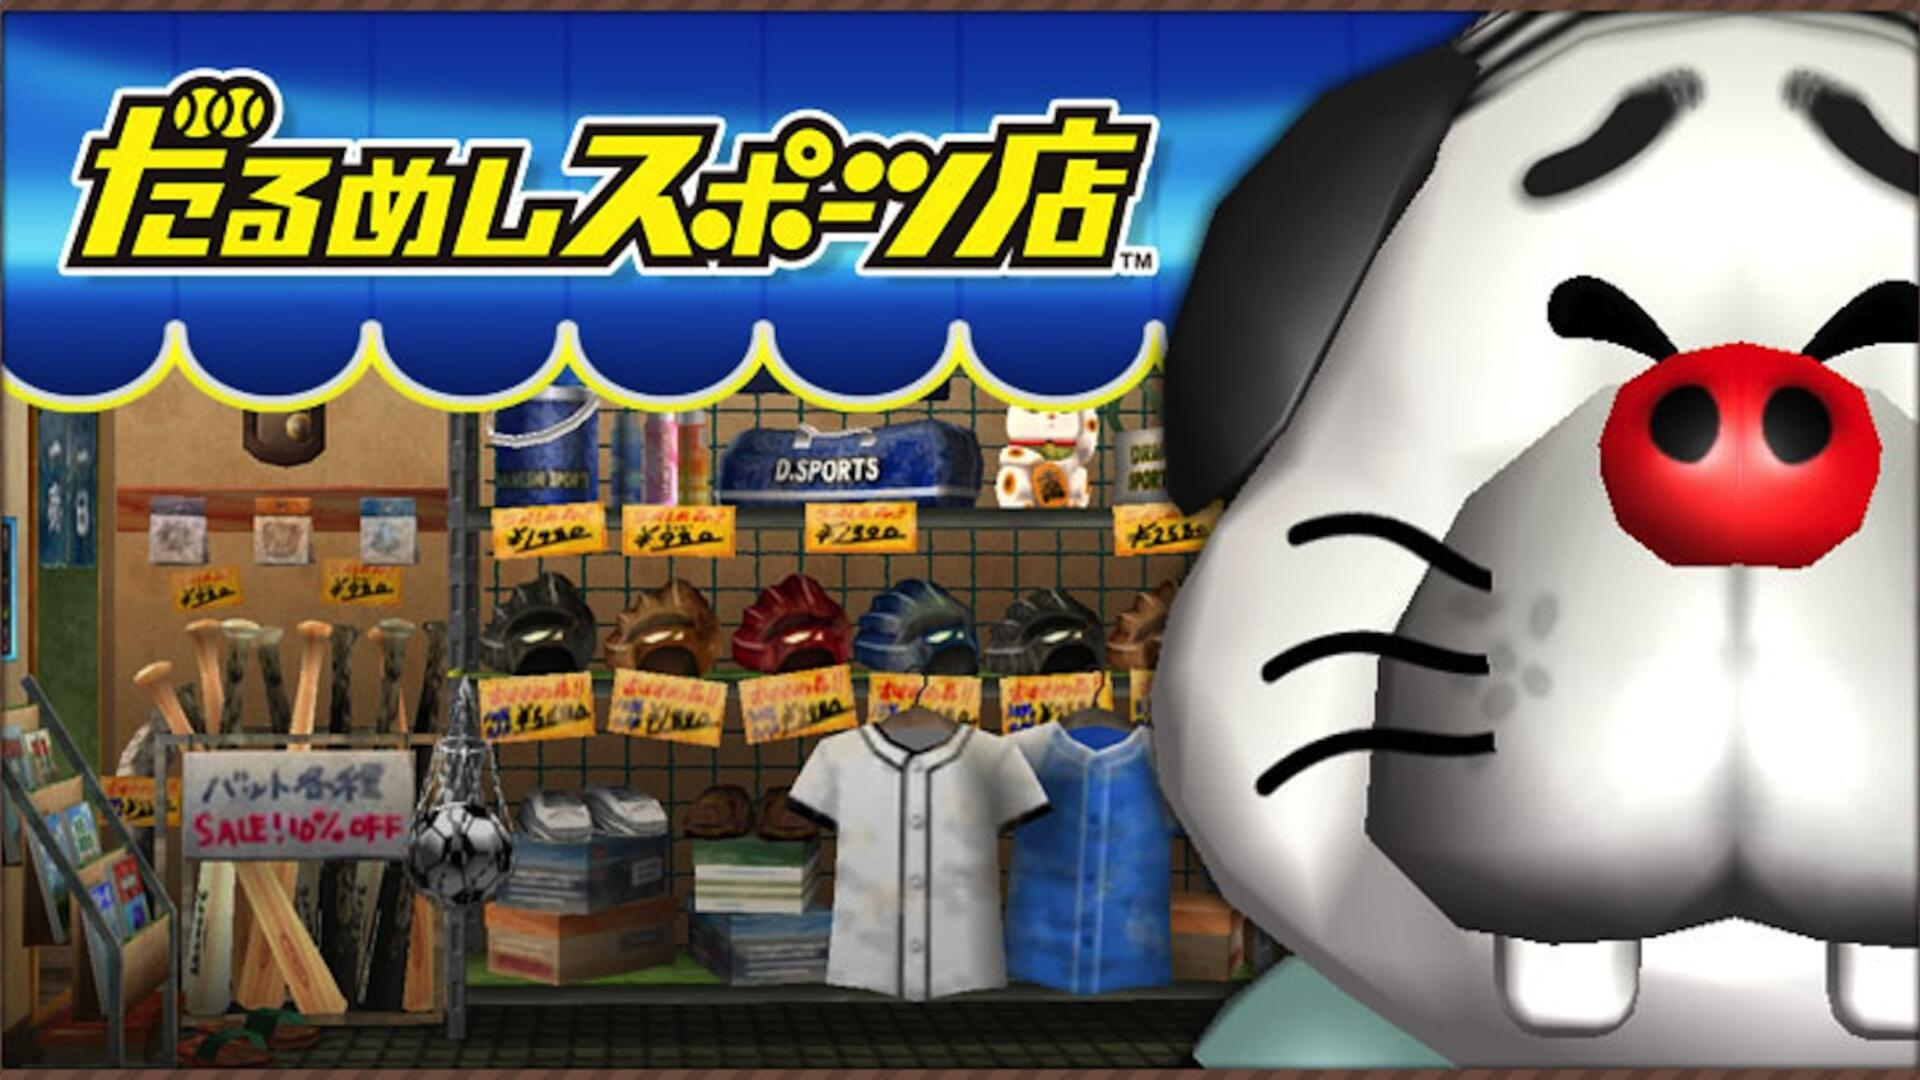 Nintendo Experiments with Haggling in Free-to-Play